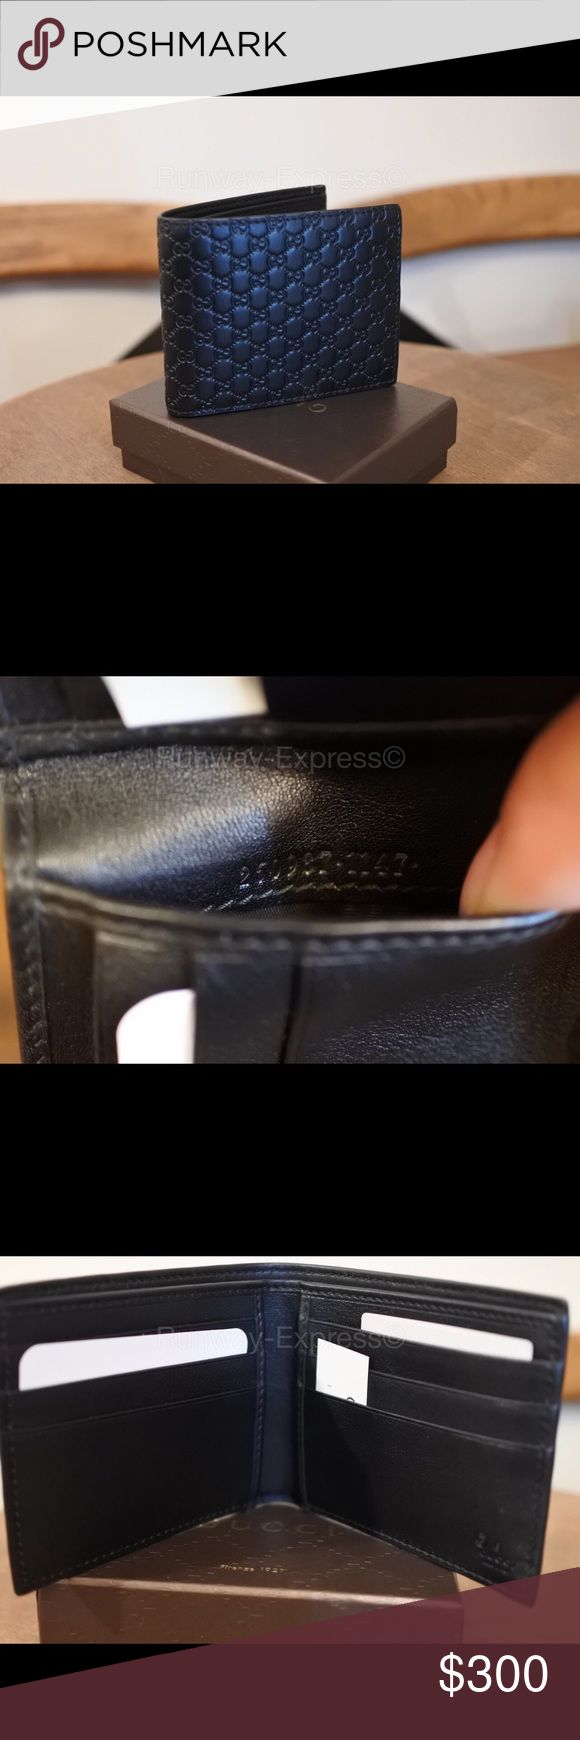 """Gucci Micro Guccissima Bi-Fold Wallet 100% Authentic Brand New   Black micro Guccissima leather with black leather trim/interior. Six card slots and two bill compartments. Closed, 3 1/2""""H x 4 1/3""""W x 2/3""""D. Open, 3 1/2""""H x 8 1/2""""W. Made in Italy. About Gucci: In 1921 Florence, a craftsman named Guccio Gucci opened his store to sell leather goods, and a legend was born. Gucci Bags Wallets"""